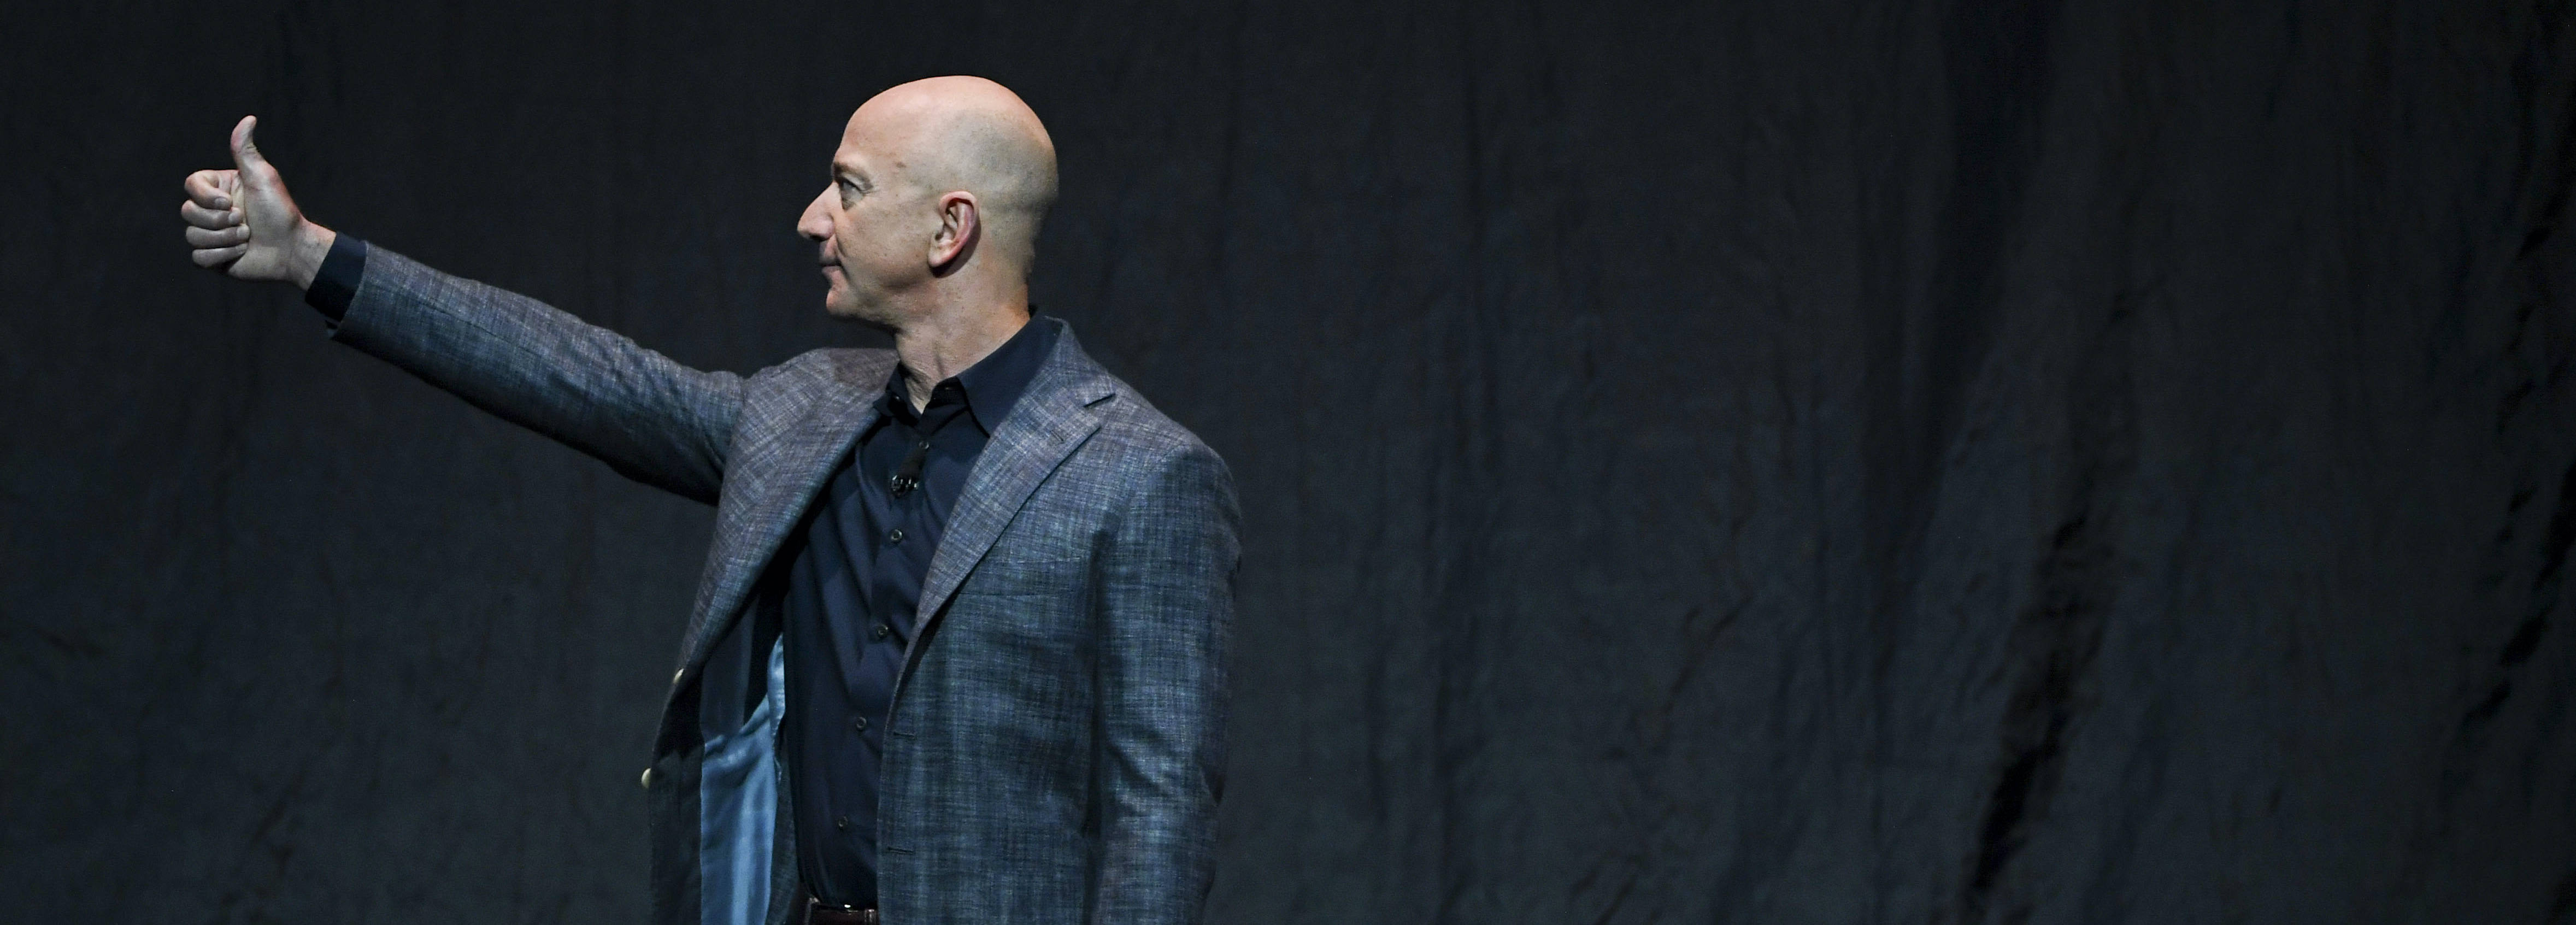 Amazon founder Jeff Bezos will step down as chief executive this summer and assume the role of executive chair. (Jonathan Newton/The Washington Post)